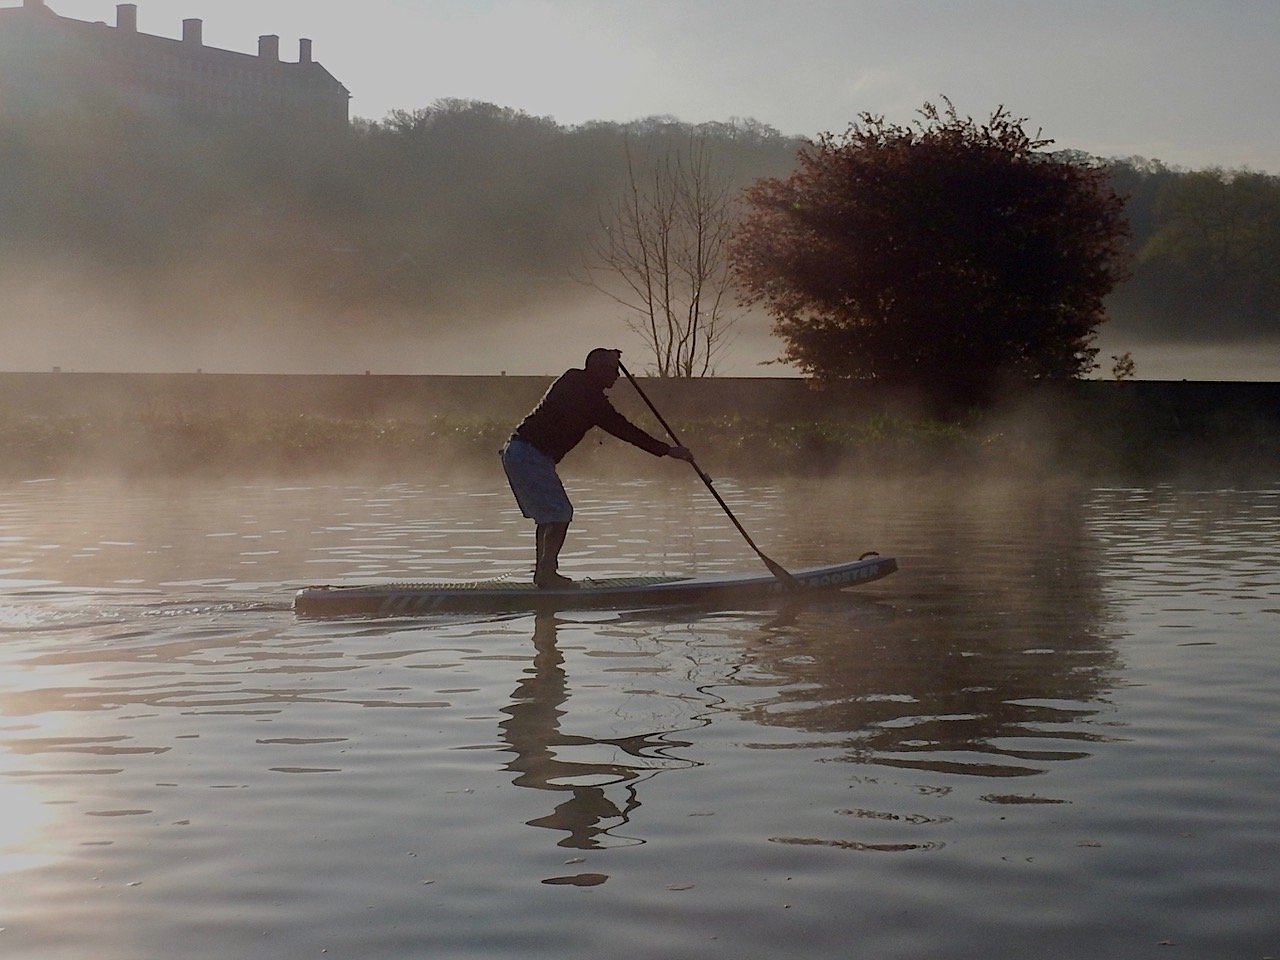 Dawn Patrol - Richmond Upon Thames